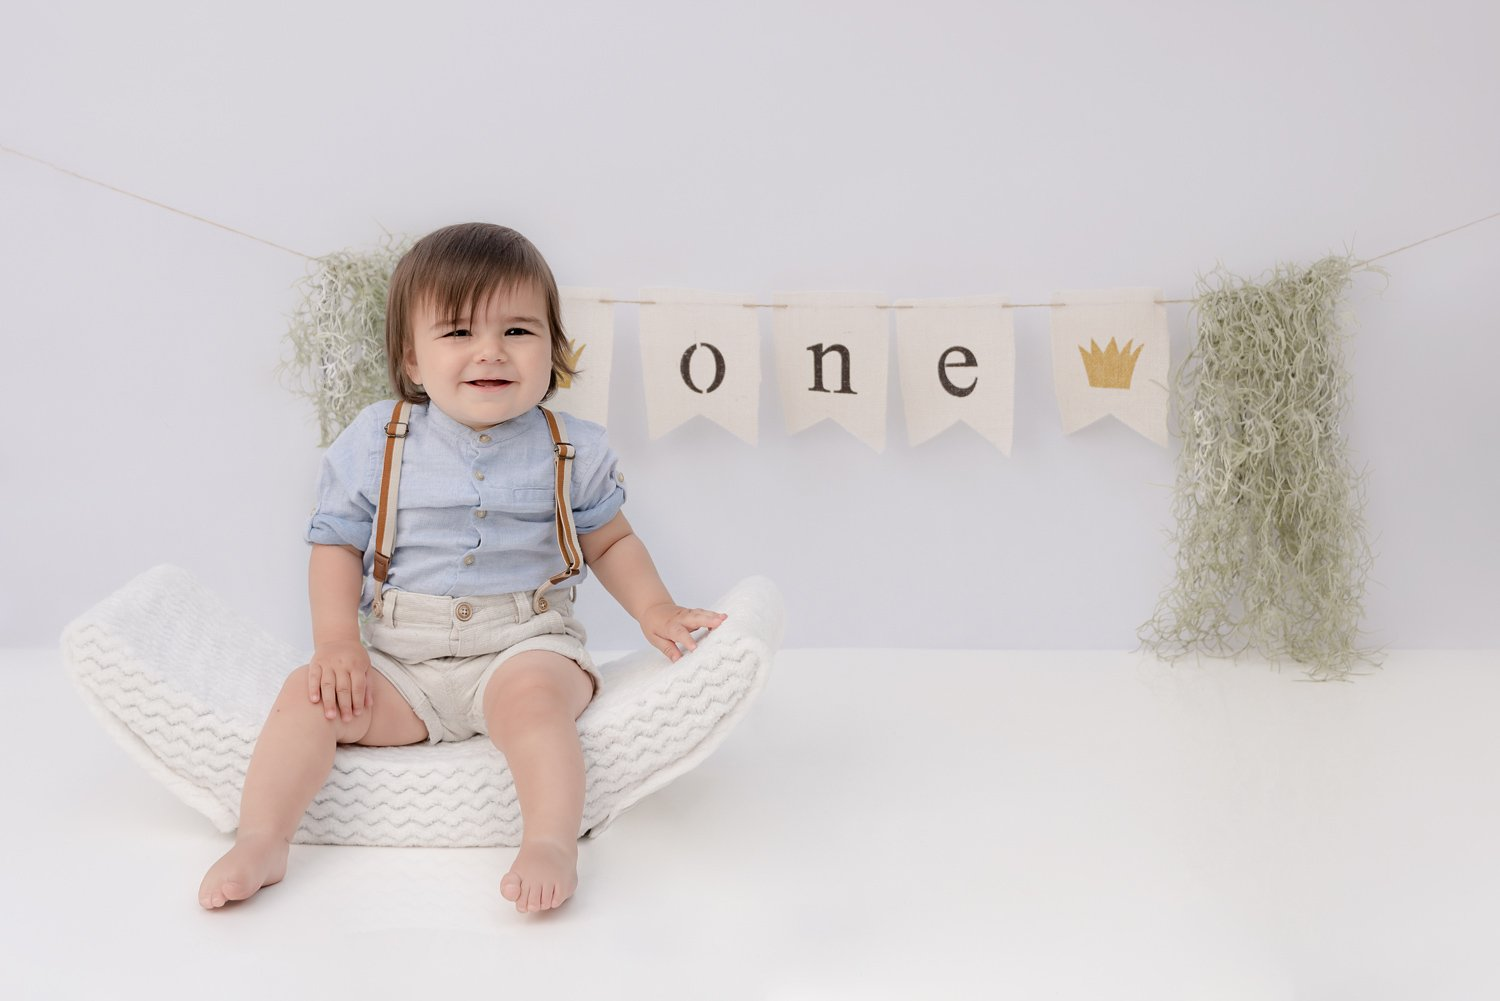 North Vancouver Photography Studio - Cake Smash - First Birthday Portrait picture of a 1 year old sitting in front of a banner with the word one